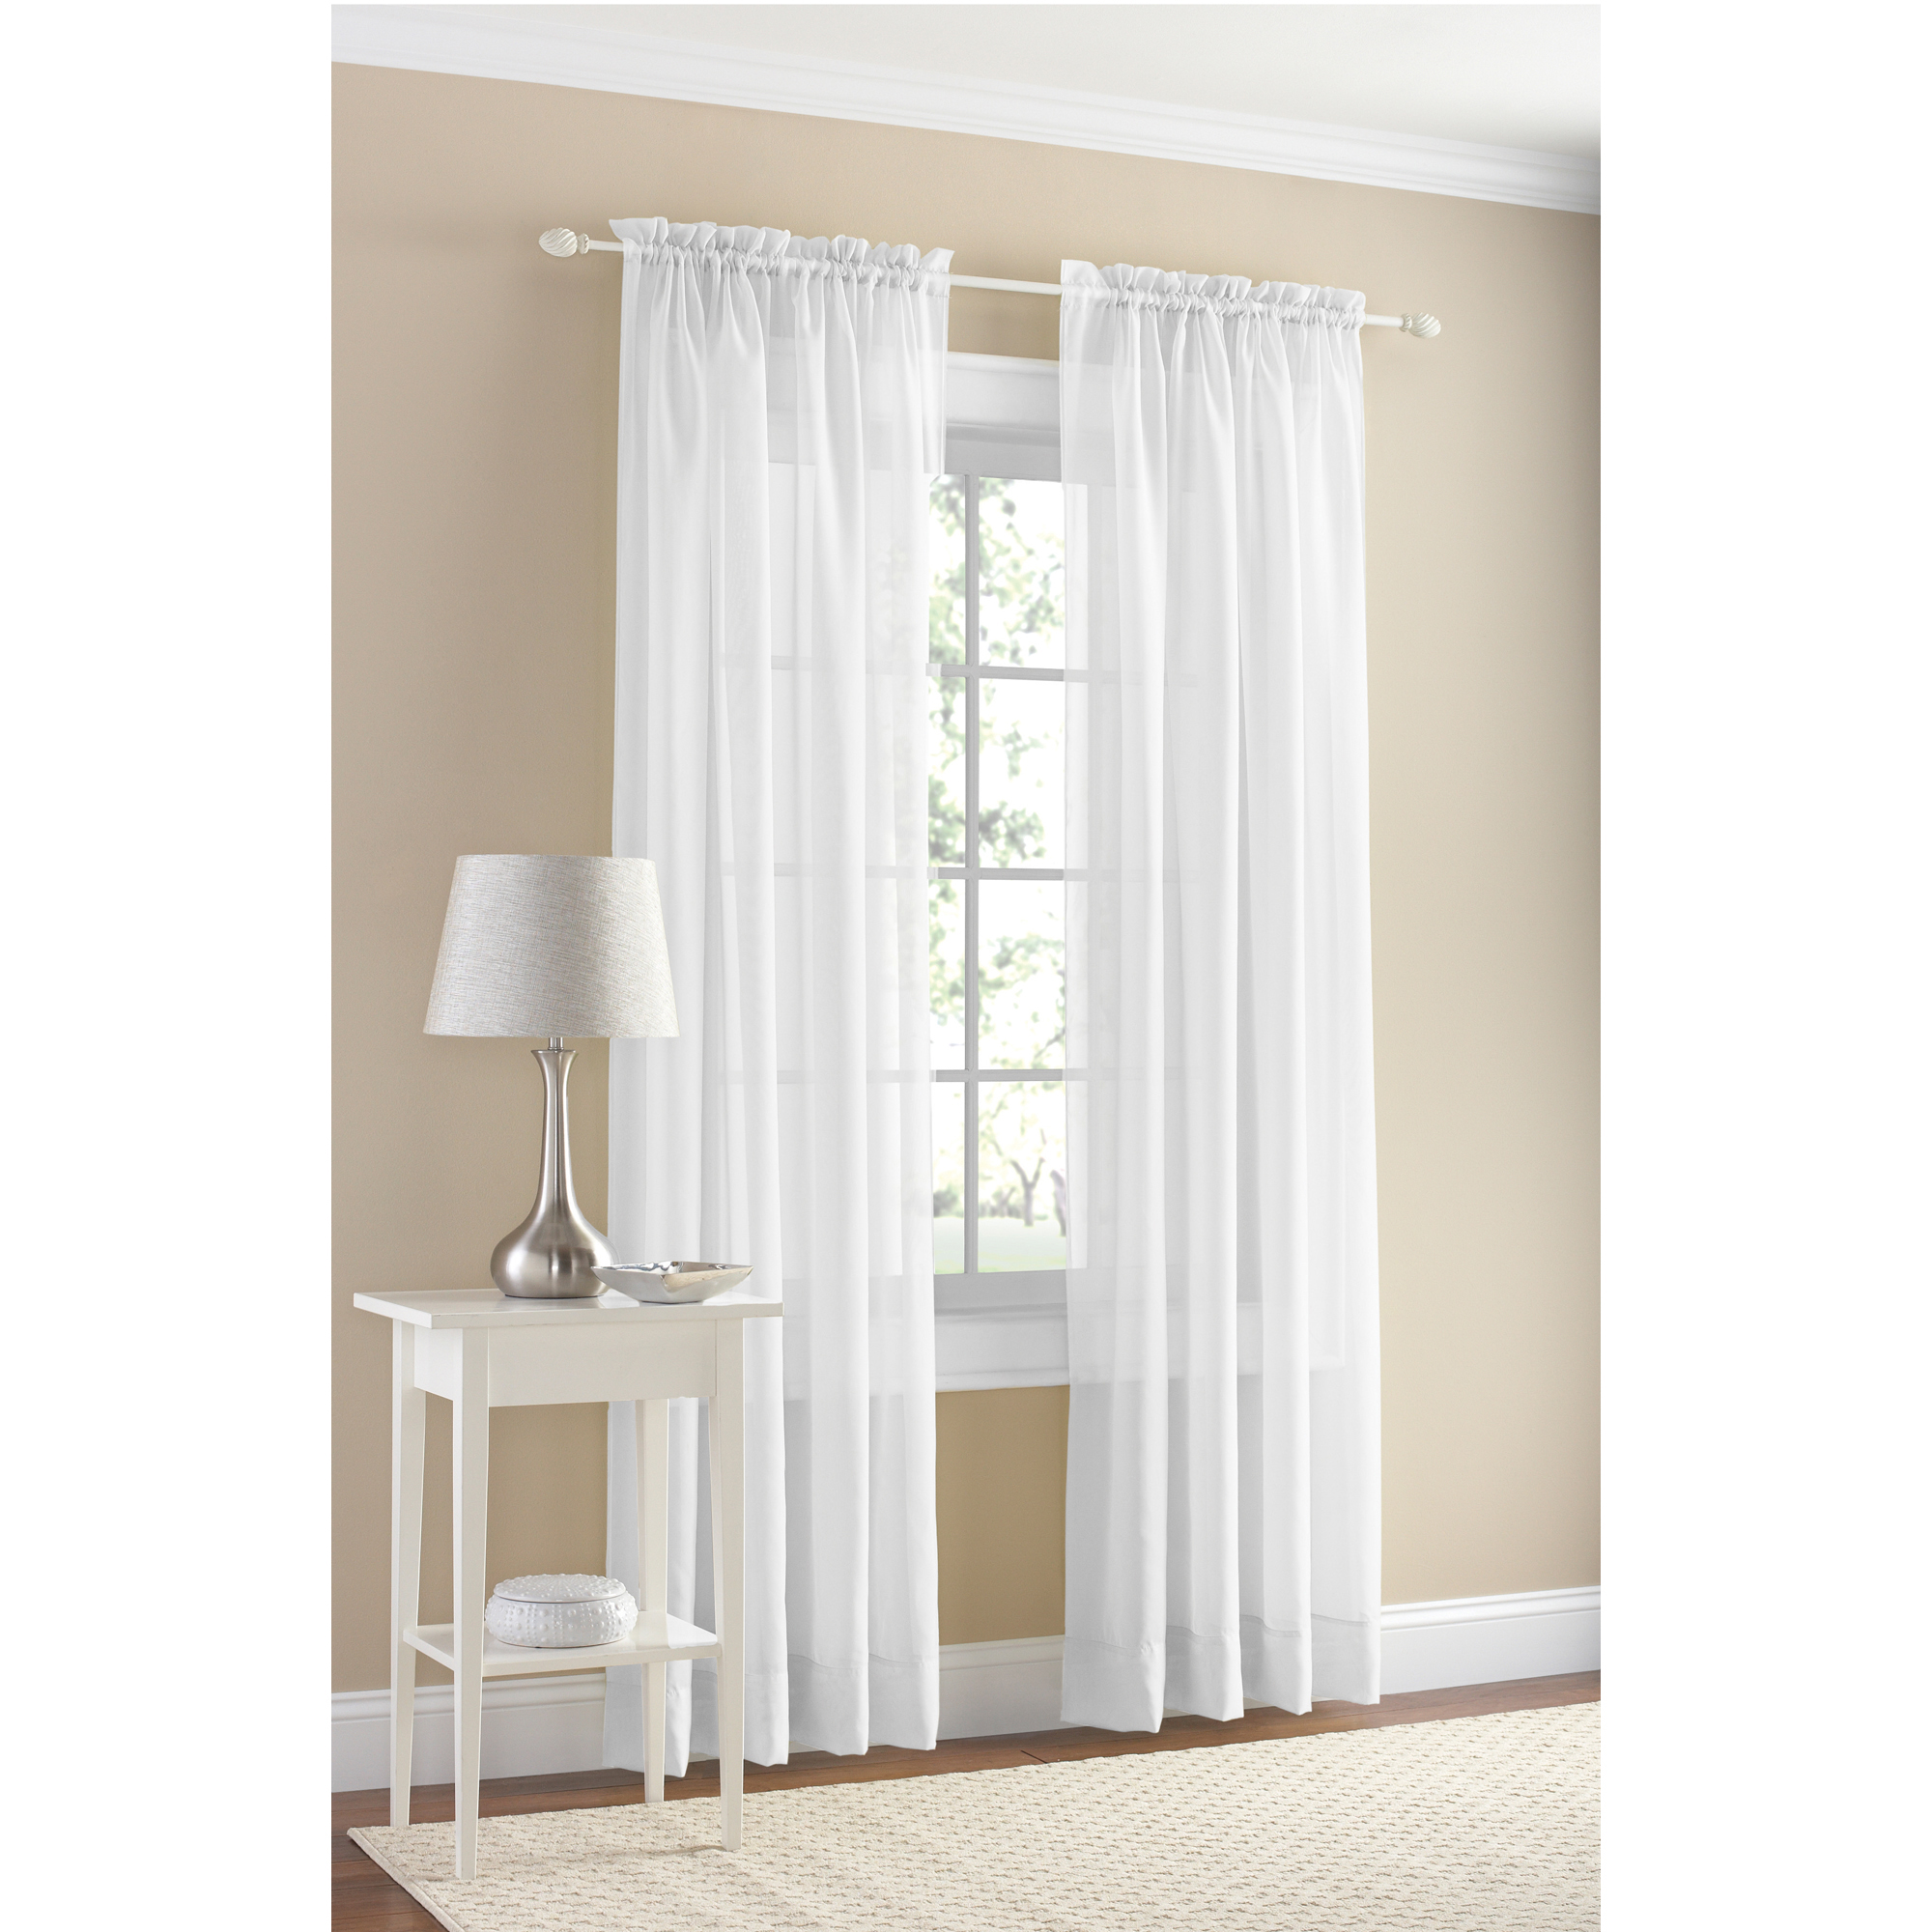 Mainstays Marjorie Solid Voile Curtain Panel Pair, Set of 2